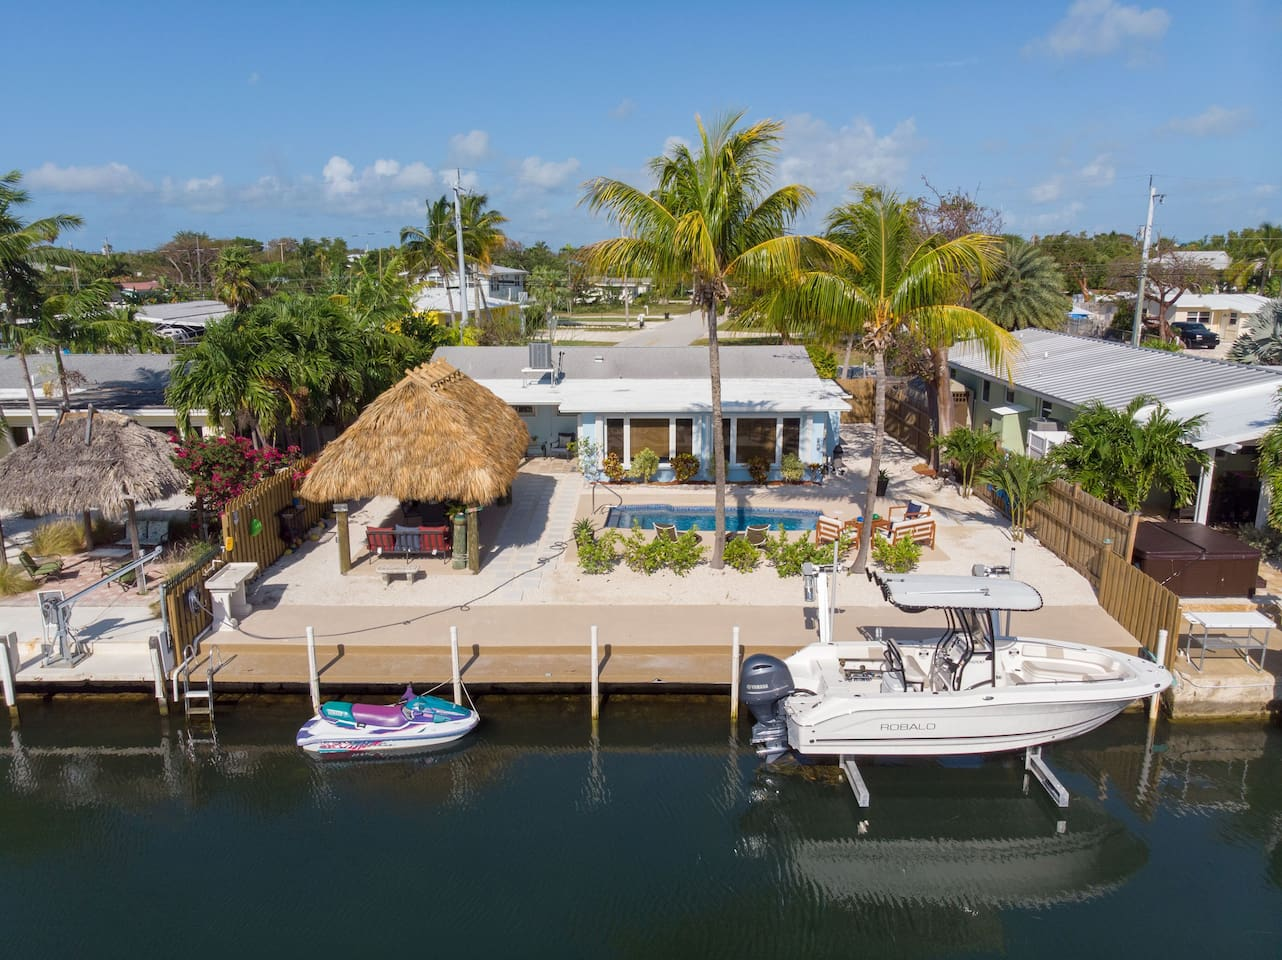 Everything you need for the perfect Keys vacation! Jetted pool, Tiki Hut, 2 Bikes, 2 Kayaks, Dockage, Fish Cleaning Station, Grill